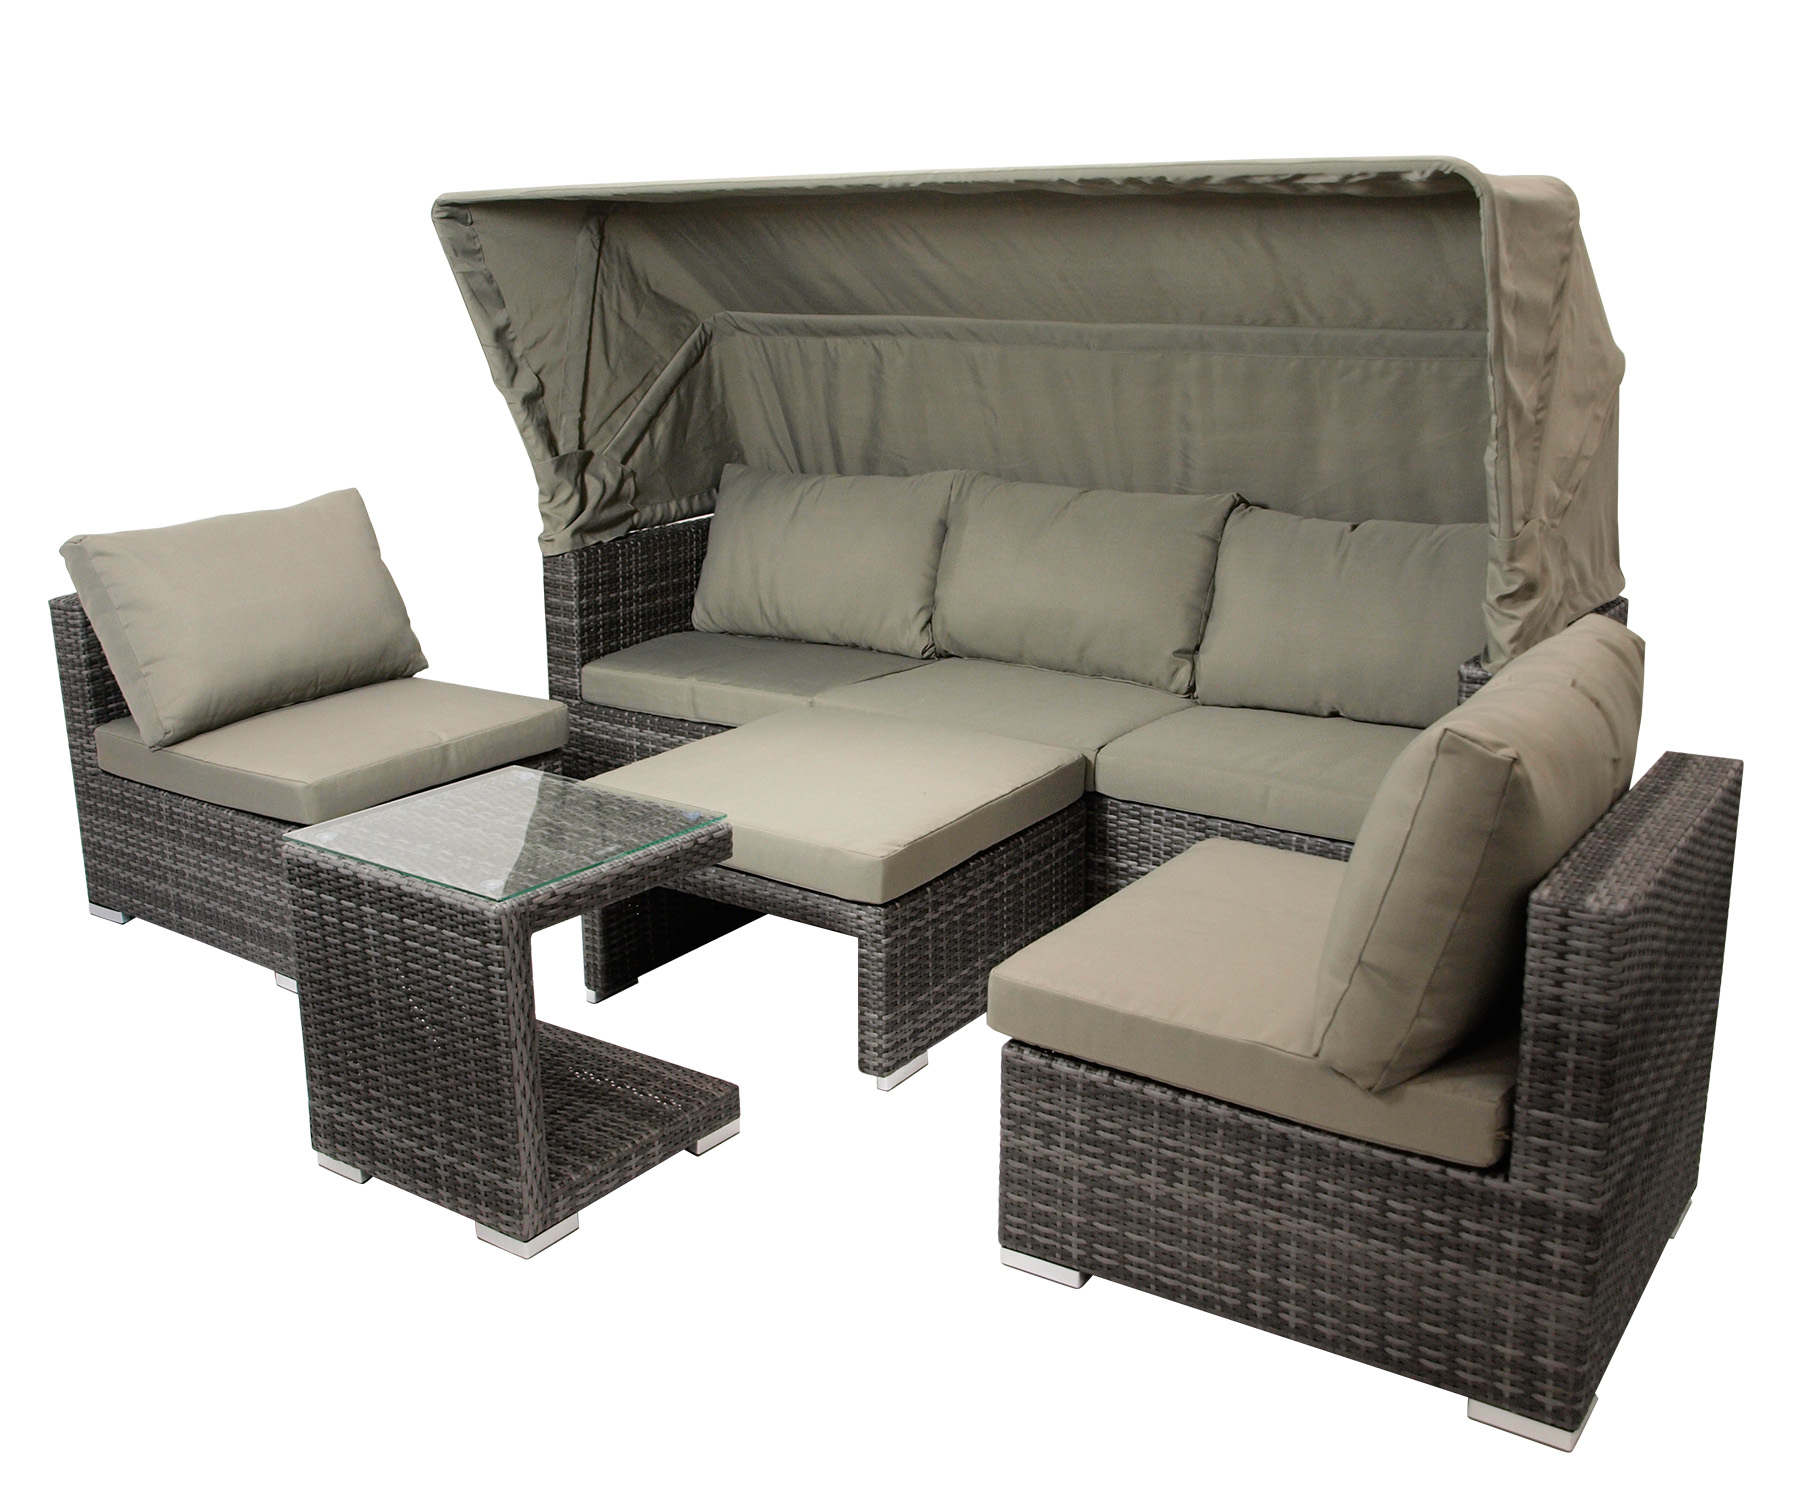 loungeset sitzgruppe liegeinsel gartenm bel liege lounge. Black Bedroom Furniture Sets. Home Design Ideas